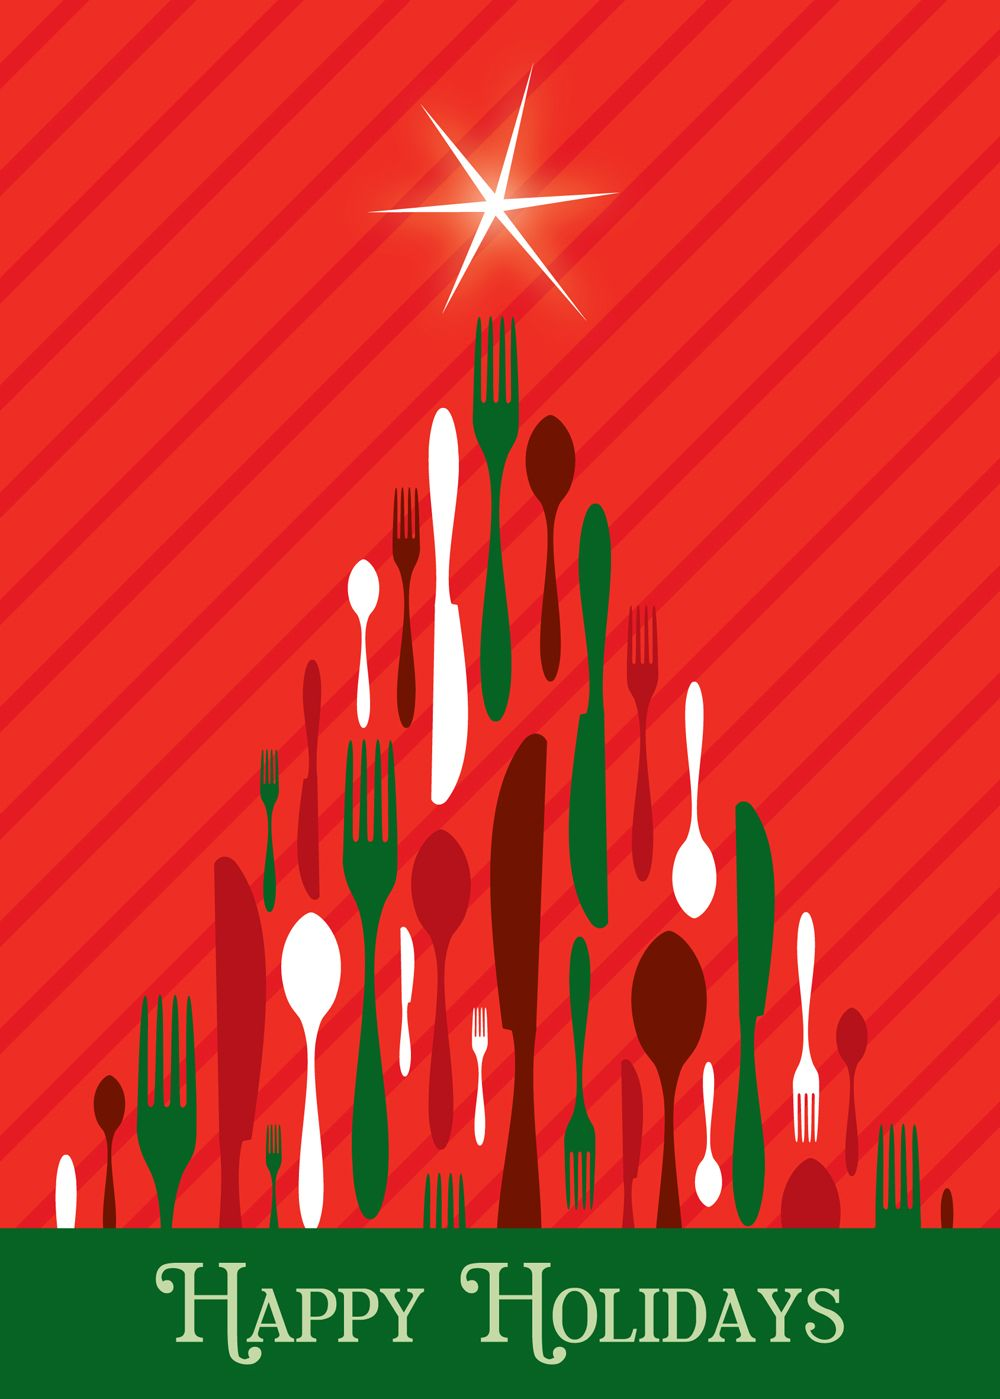 culinary tree holiday greeting cards discount greeting cards - Discount Christmas Cards